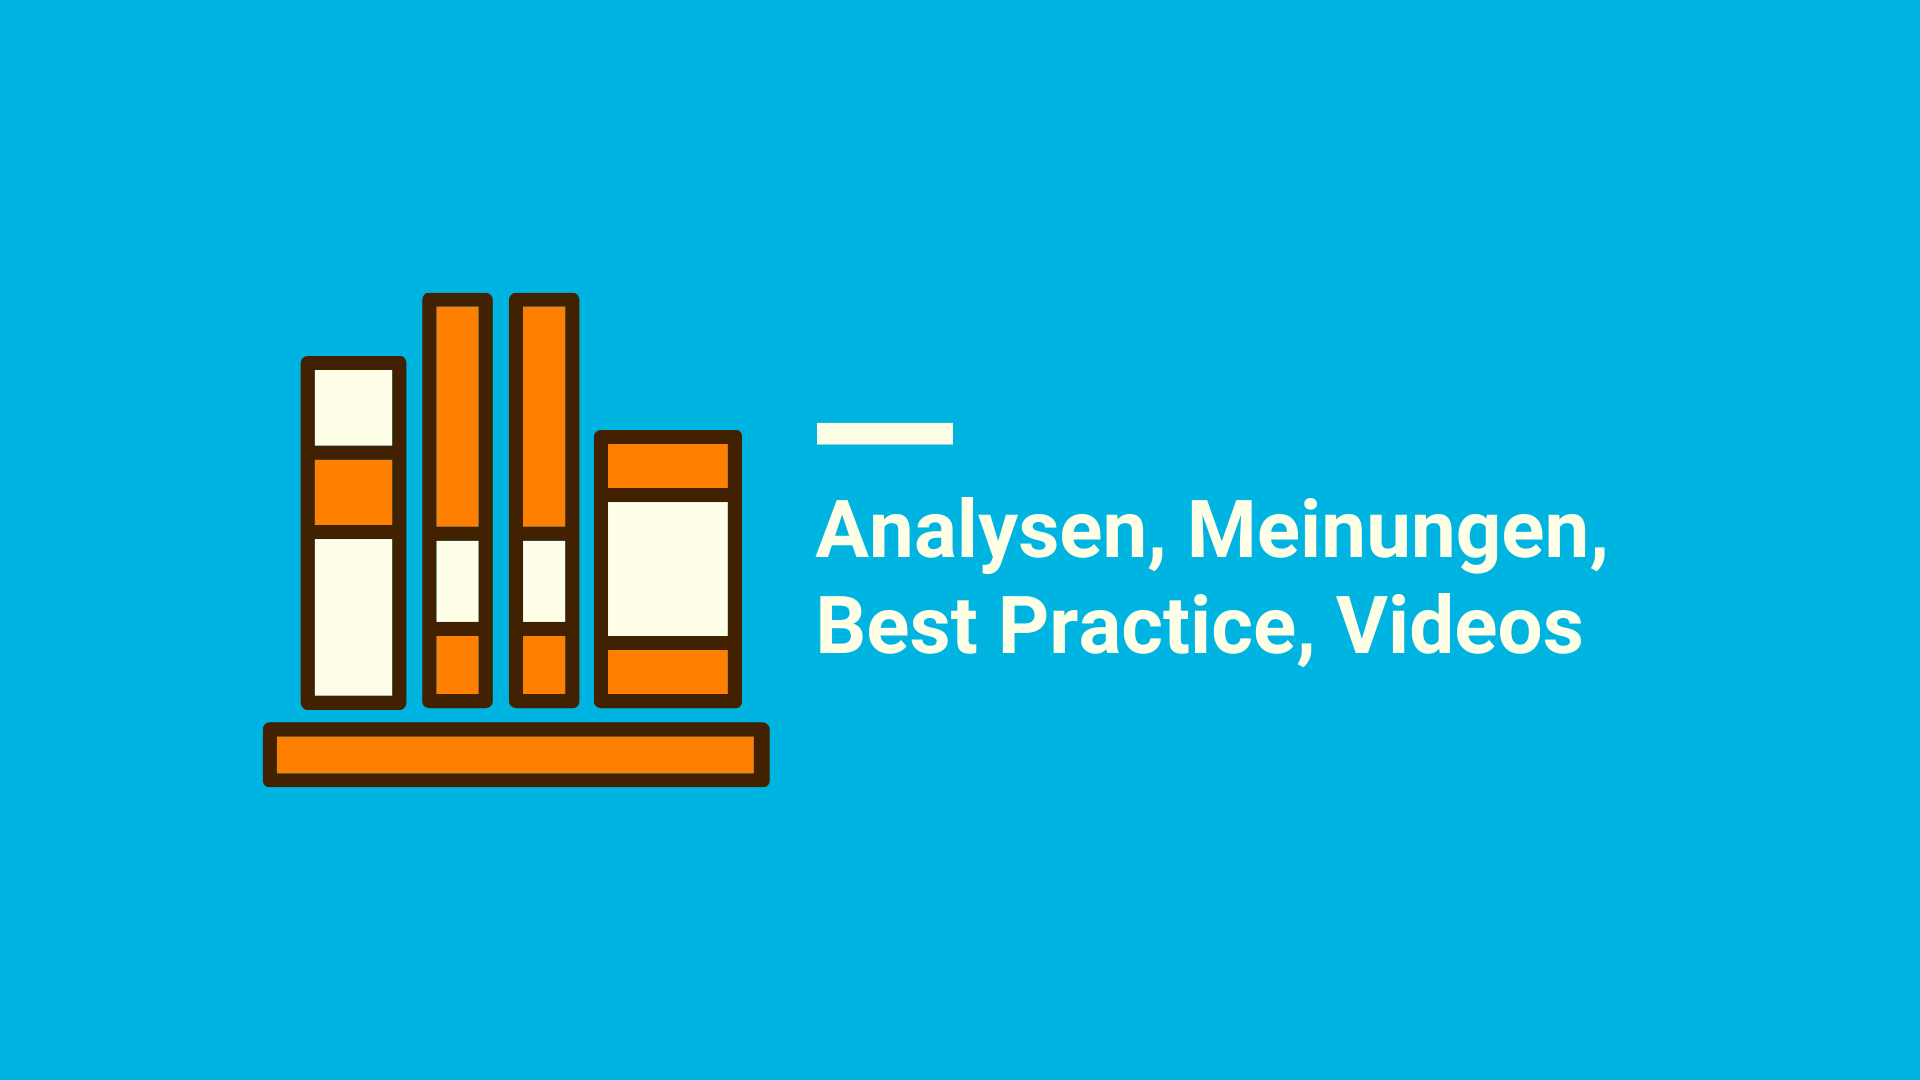 Analysis, opinions, best practice, videos